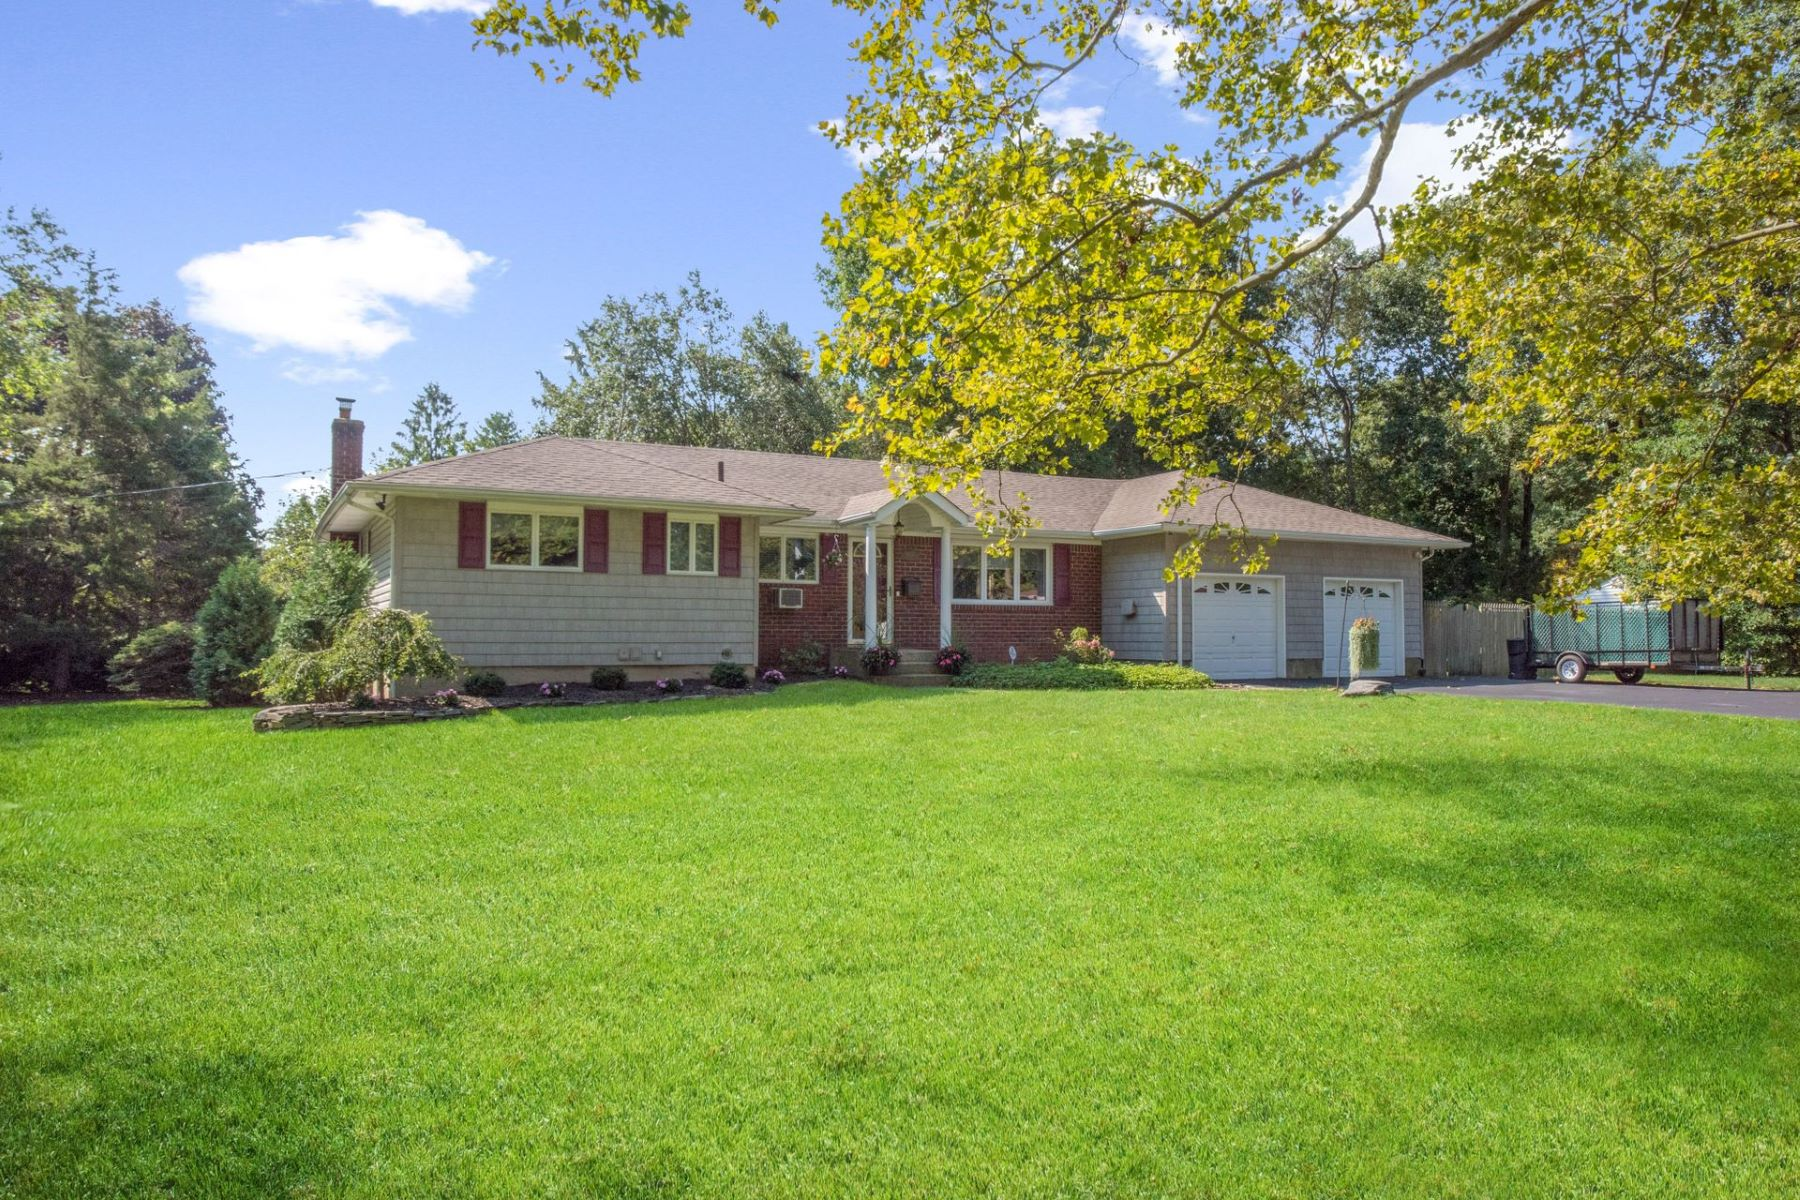 Single Family Homes for Active at Commack 8 Campden Ln Commack, New York 11725 United States